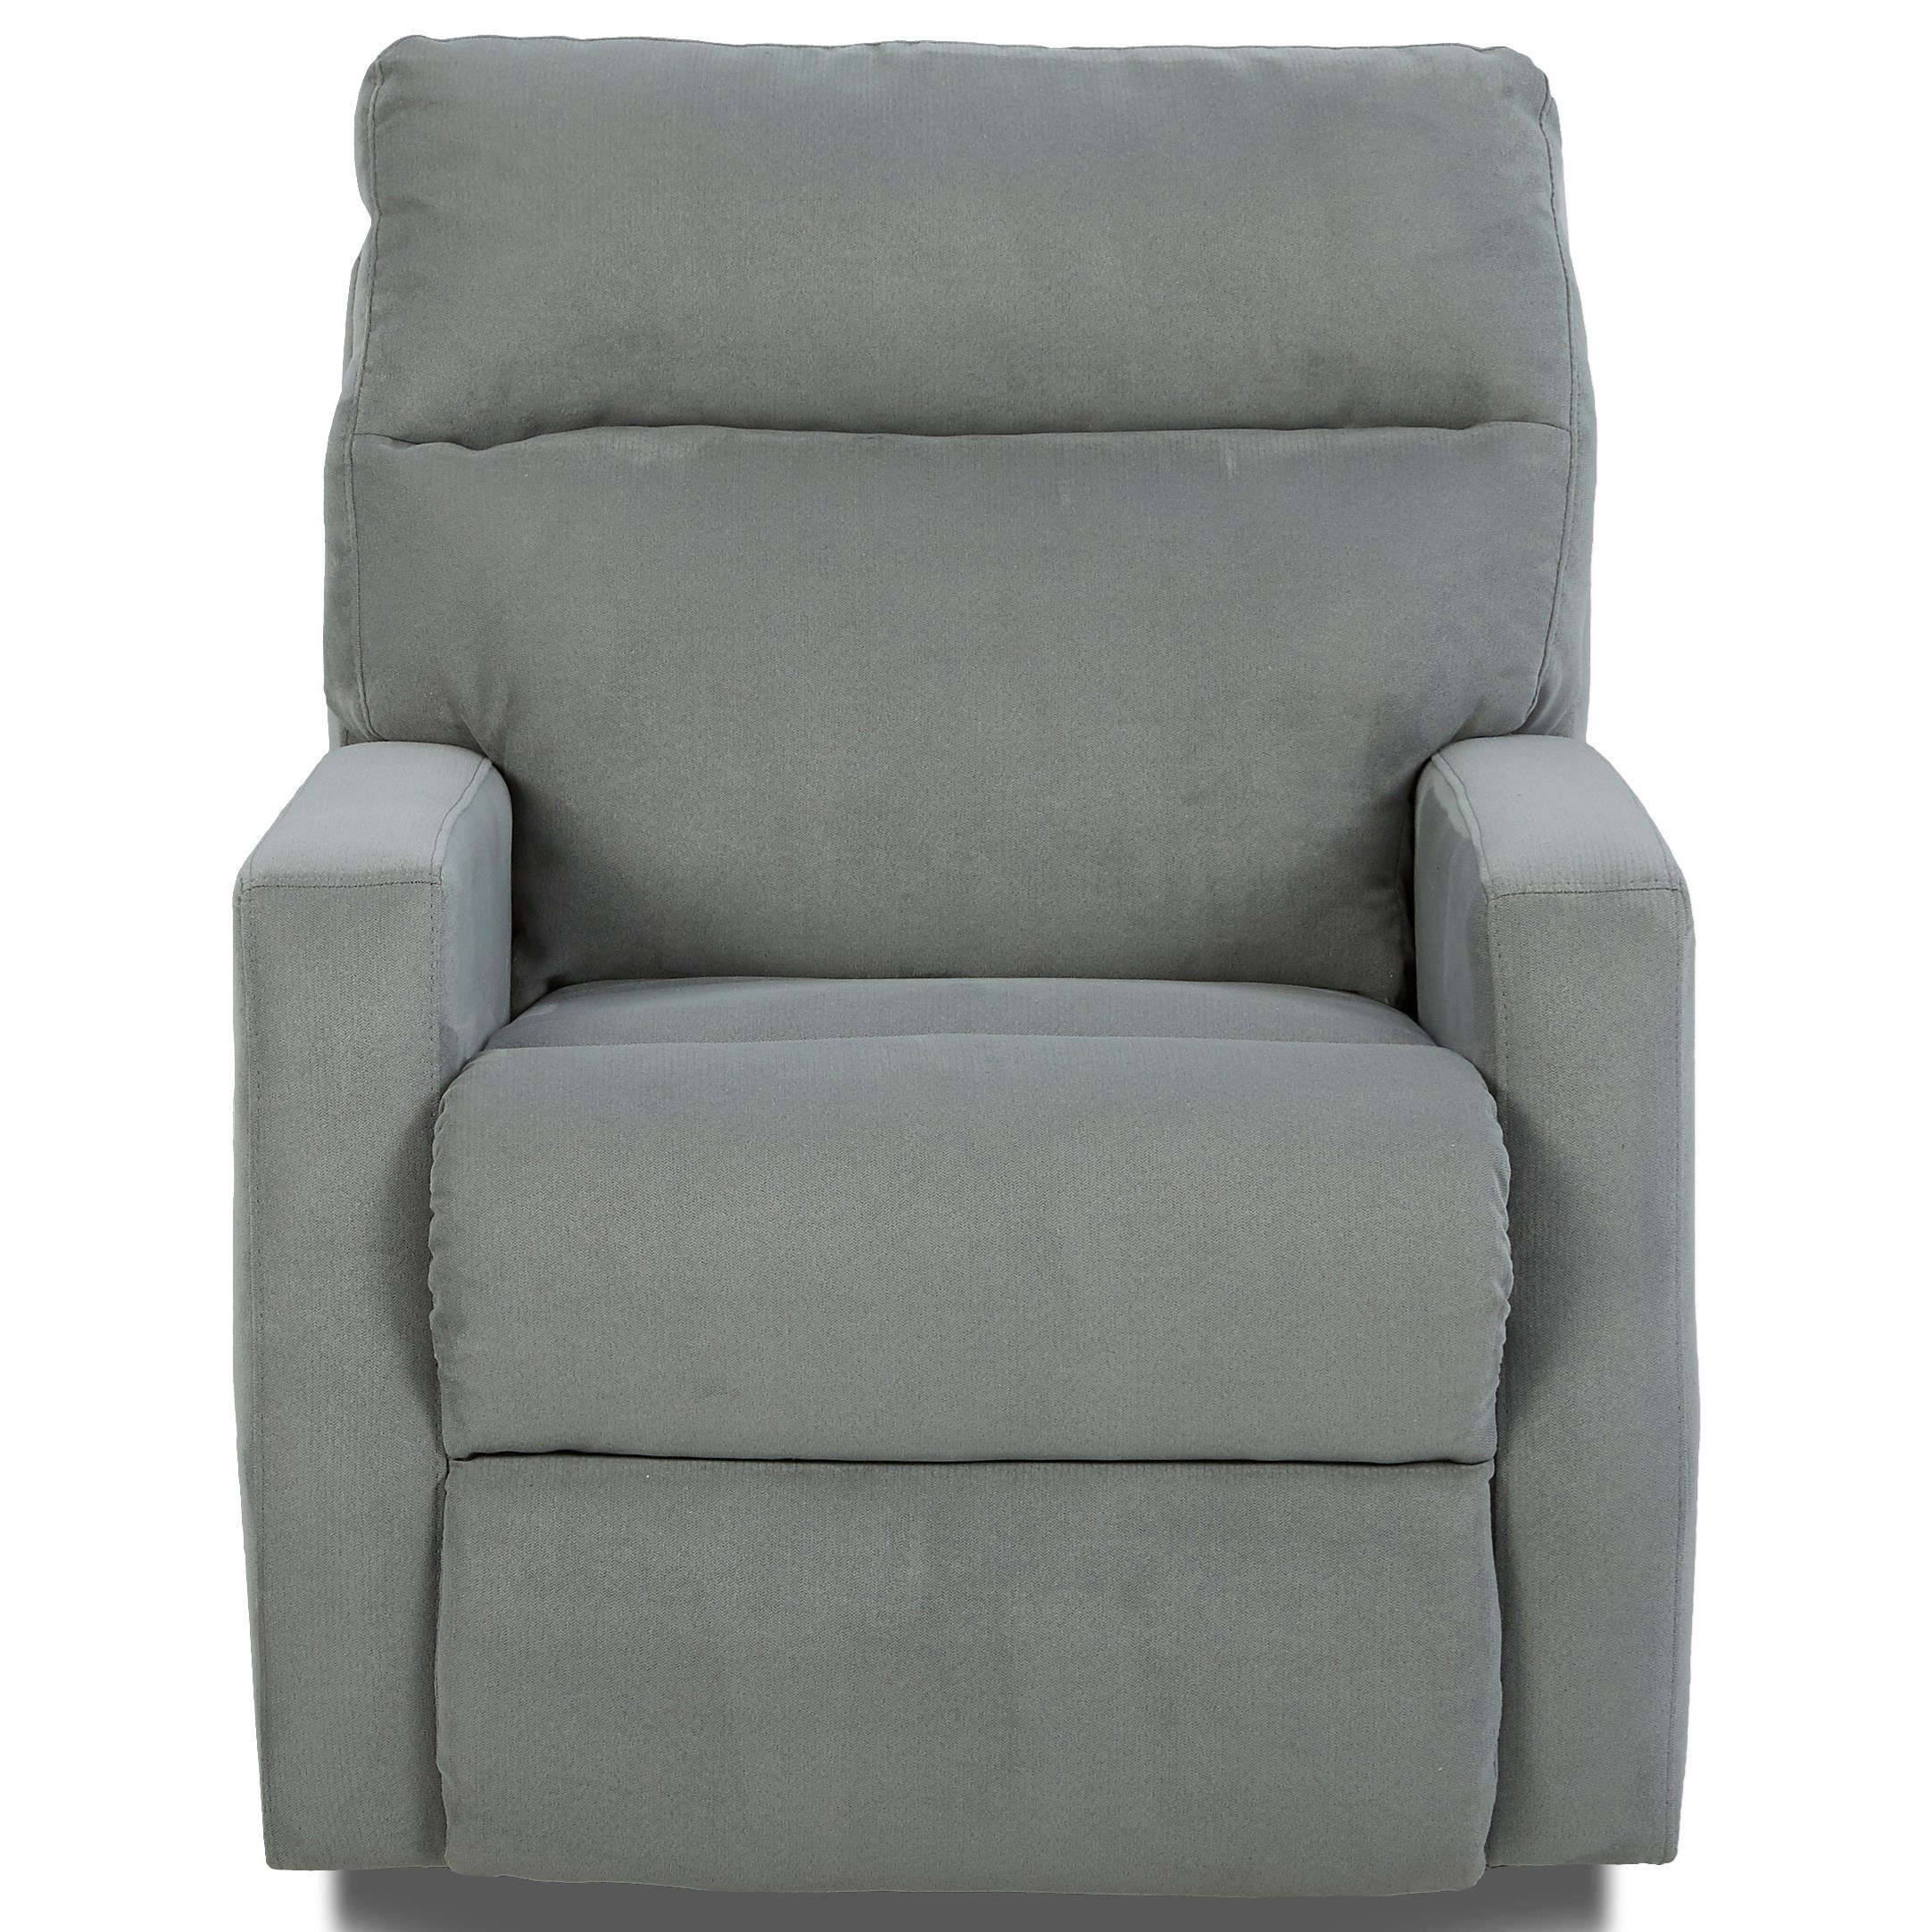 Klaussner Monticello Reclining Chair - Item Number: 41503 RC-GEO SURF